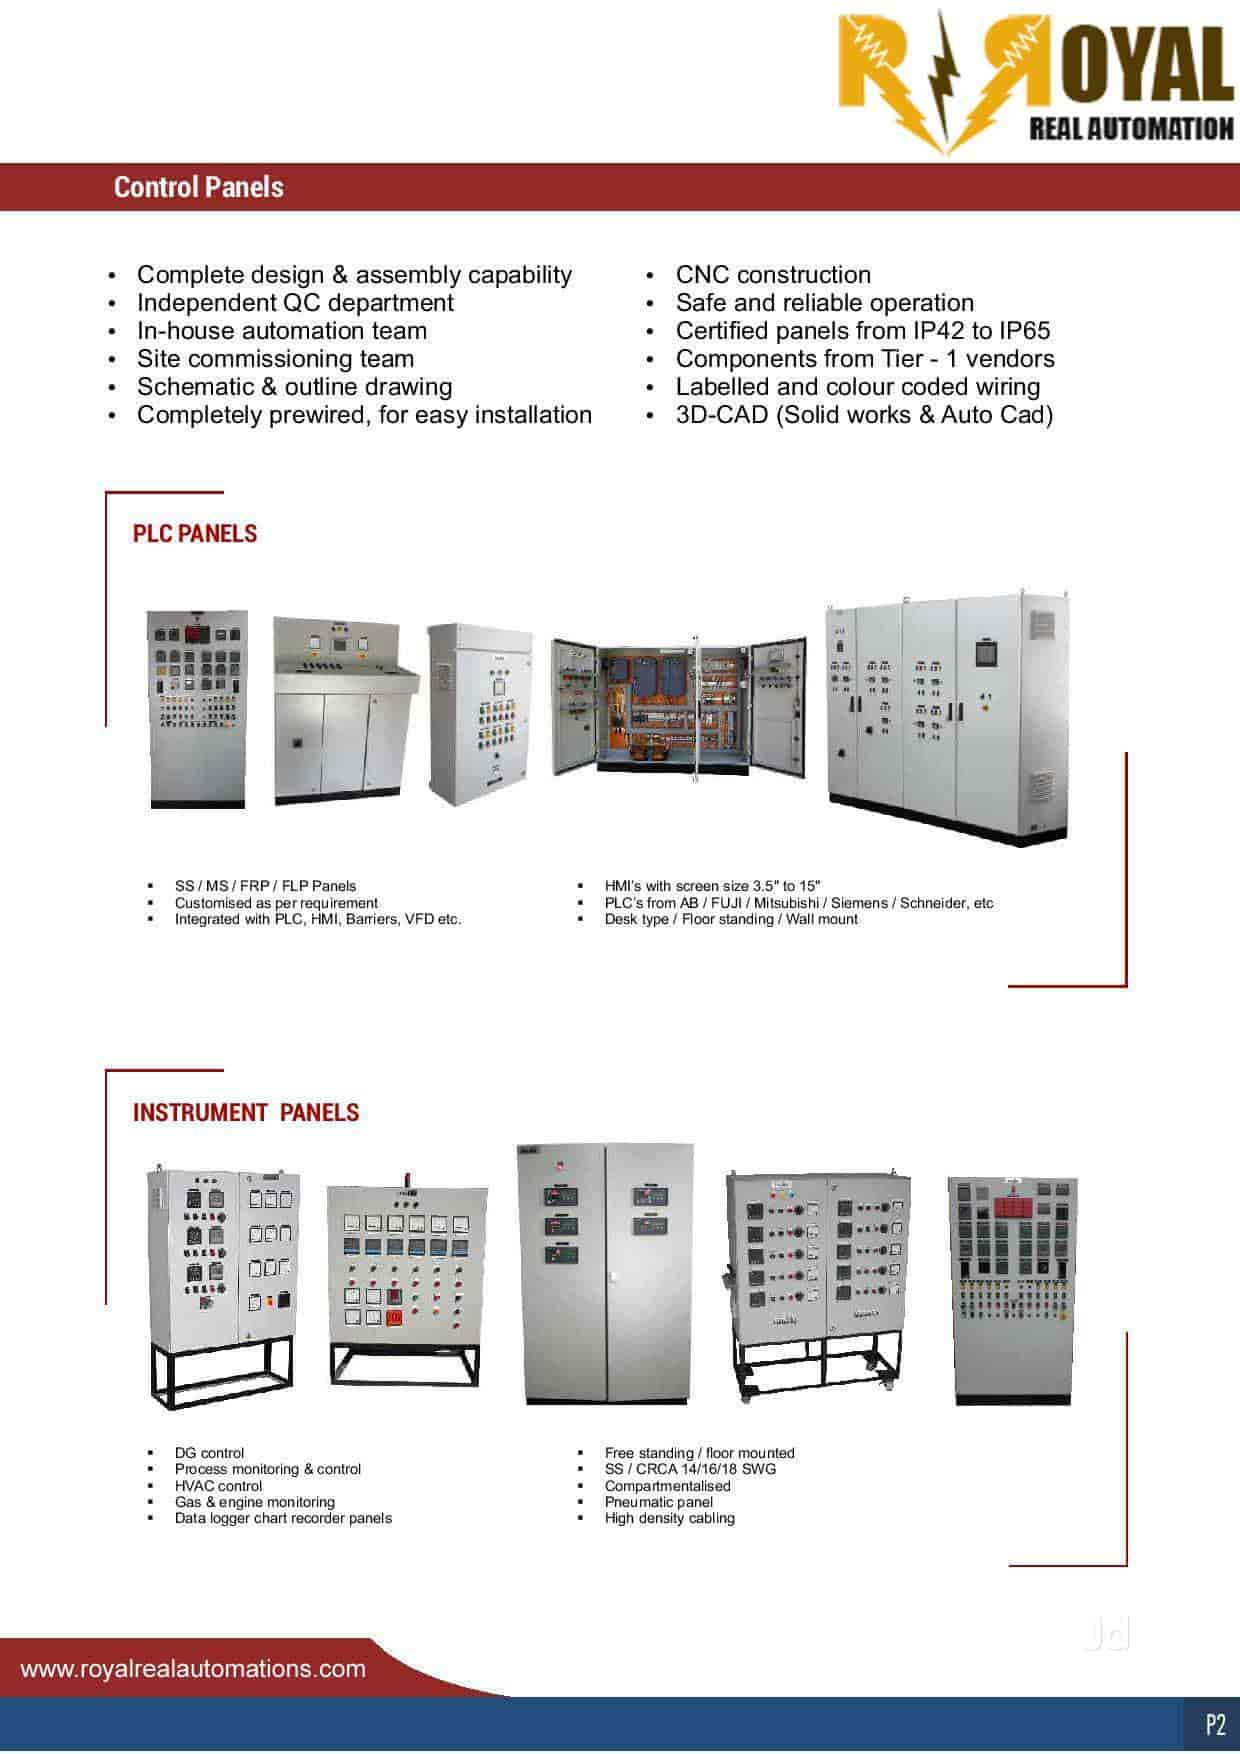 Royal Real Automation Photos Kalyan Puri Faridabad Sector 48 Simple Pneumatics Schematics Free Image About Wiring Diagram And Delhi Control Panel